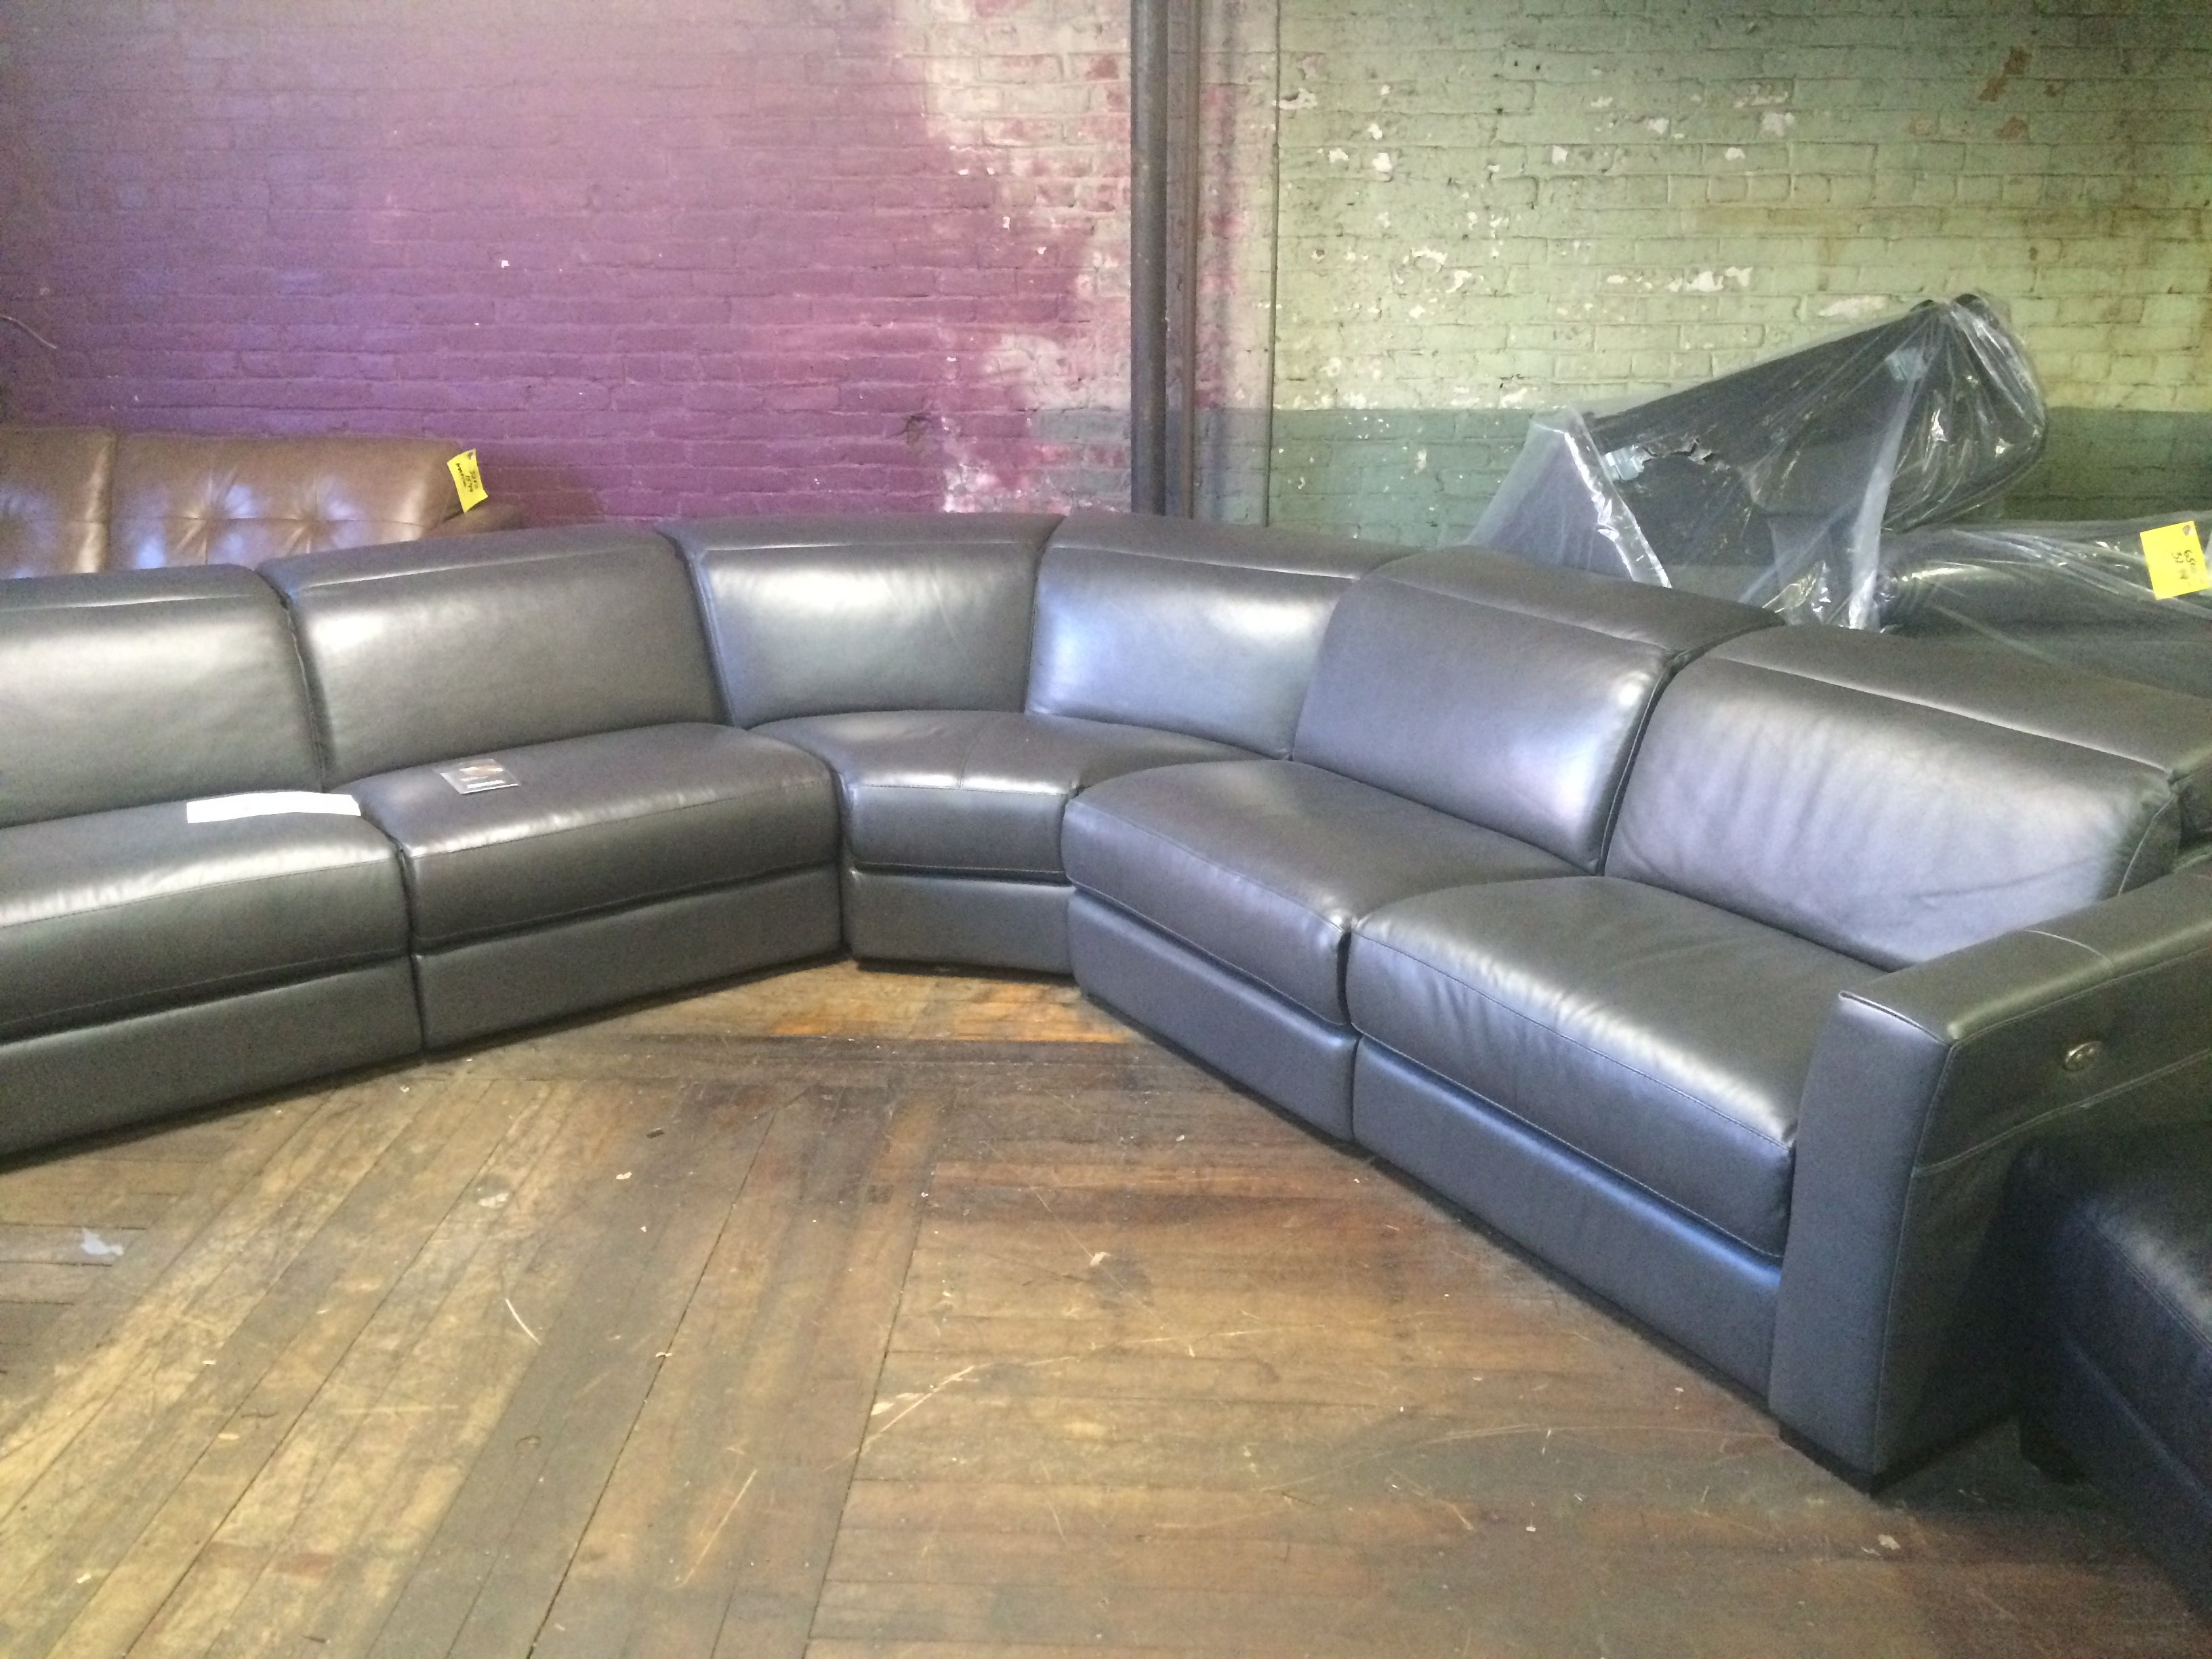 Chateau D ax Corisca 2pc Leather Sectional W RF Chaise This would